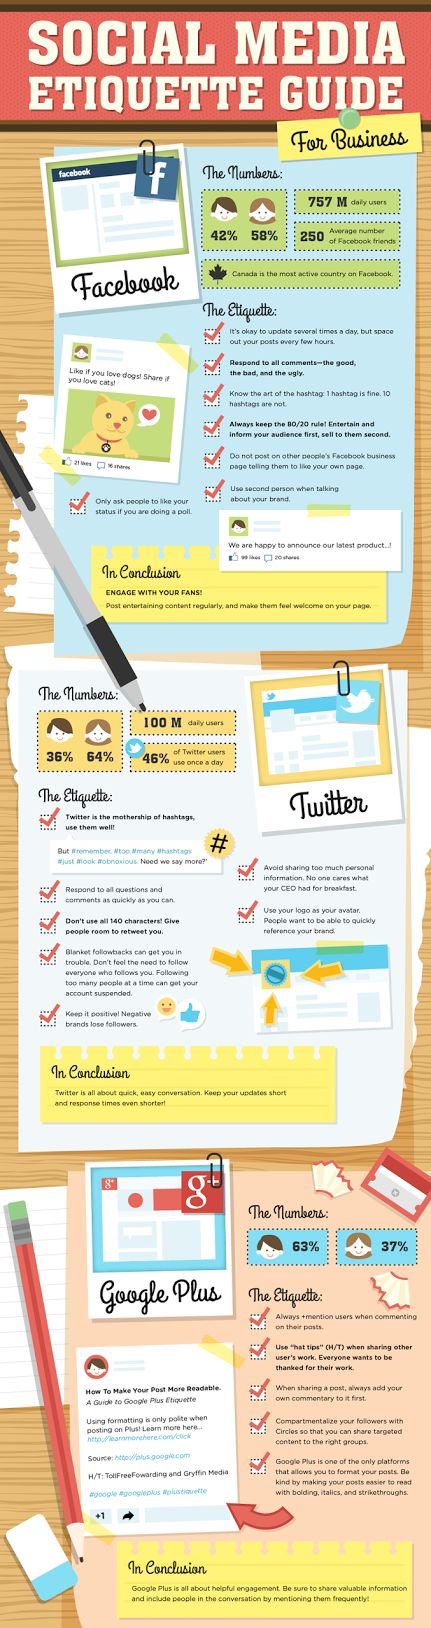 "Tips for using social media the correct way; don't ask businesses to ""like"" your page, don't post negative things unless you want a negative image, don't use up all 140 characters on Twitter or no one can tweet a reply to you. These tips help a businesses social media account prosper and bring in business rather than lose customers."